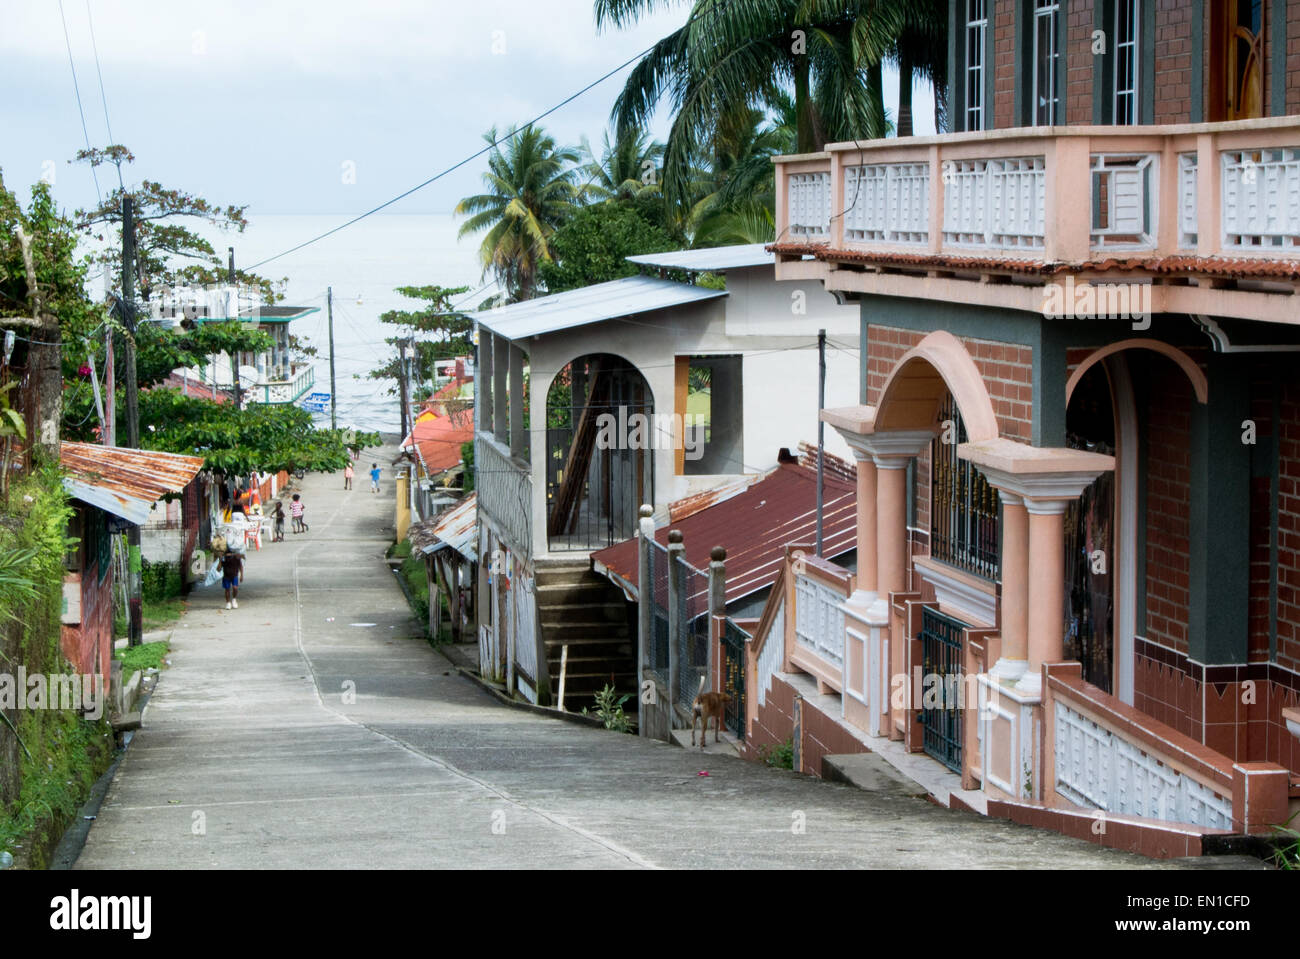 Street scene in Livingston, Guatemala, looking down to the Rio Dulce - Stock Image